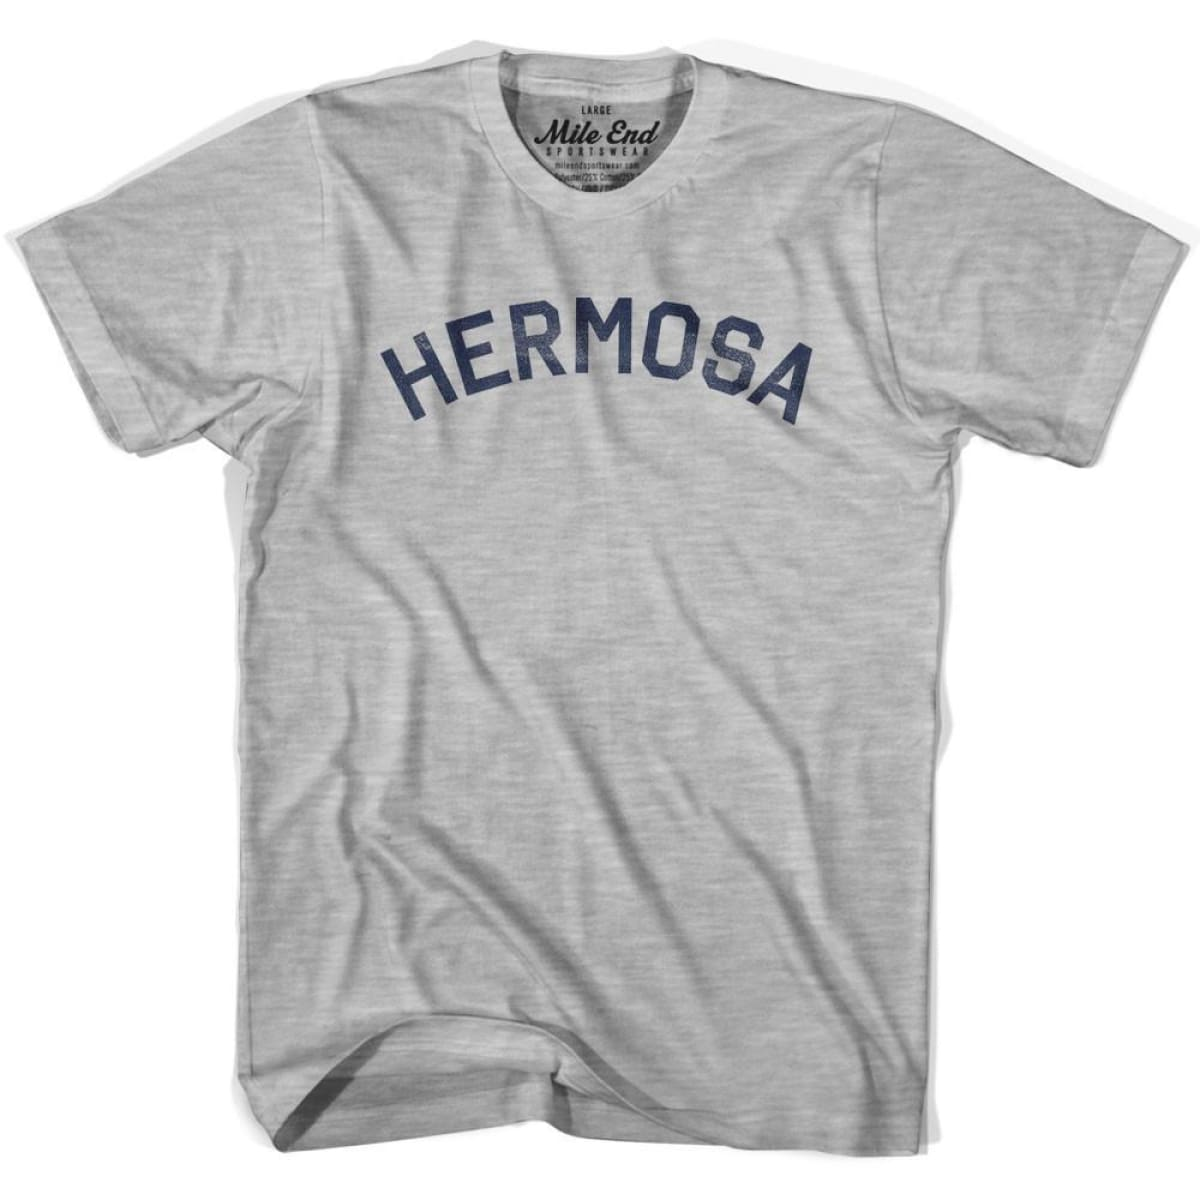 Hermosa City Vintage T-shirt - Grey Heather / Youth X-Small - Mile End City